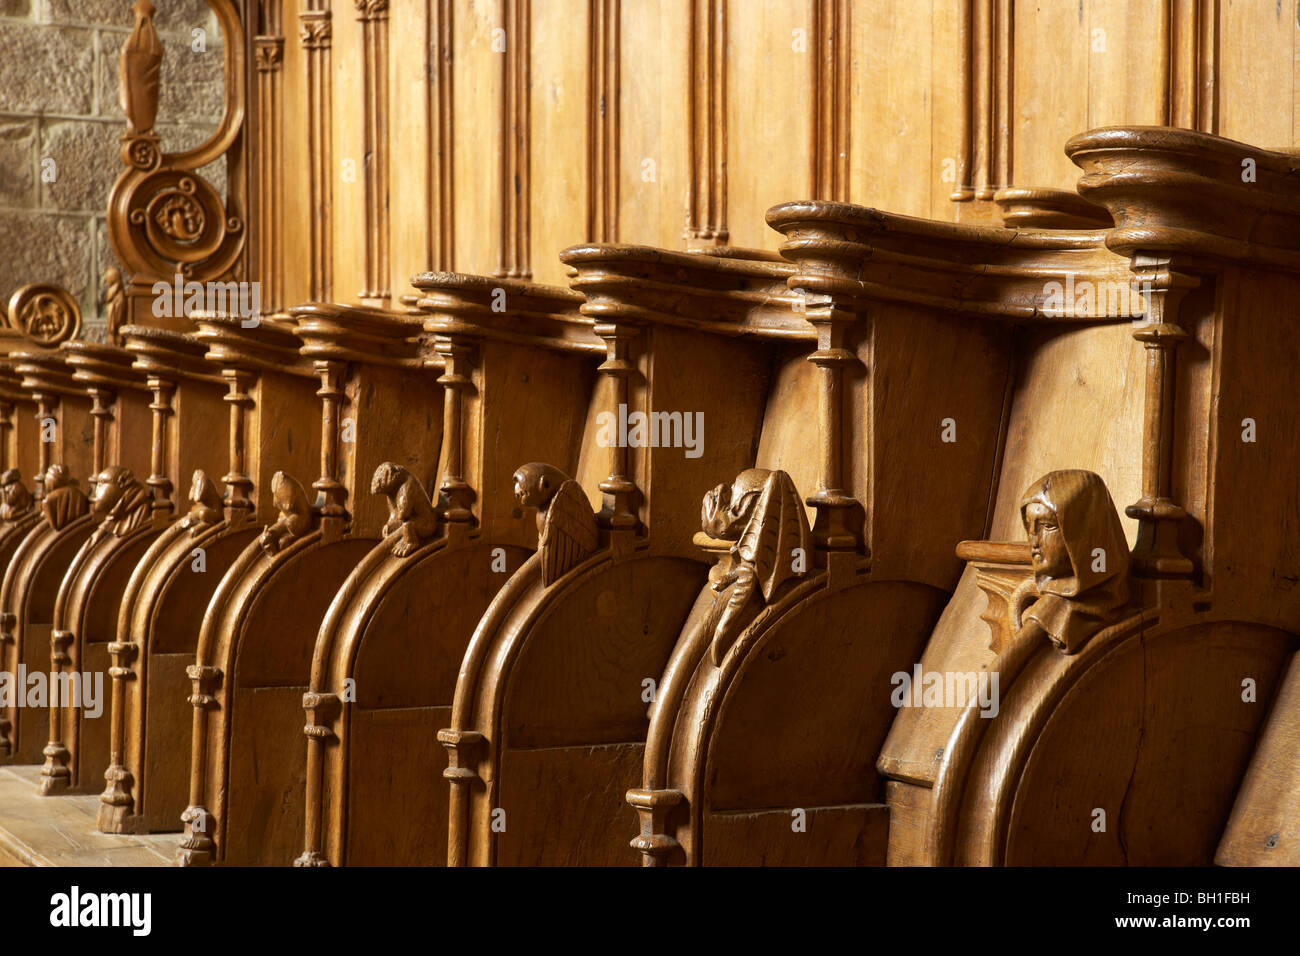 Stalls in the Église abbatiale Saint Pierre, Abbey church SaintPaul, The Way of St. James, Roads to Santiago, - Stock Image